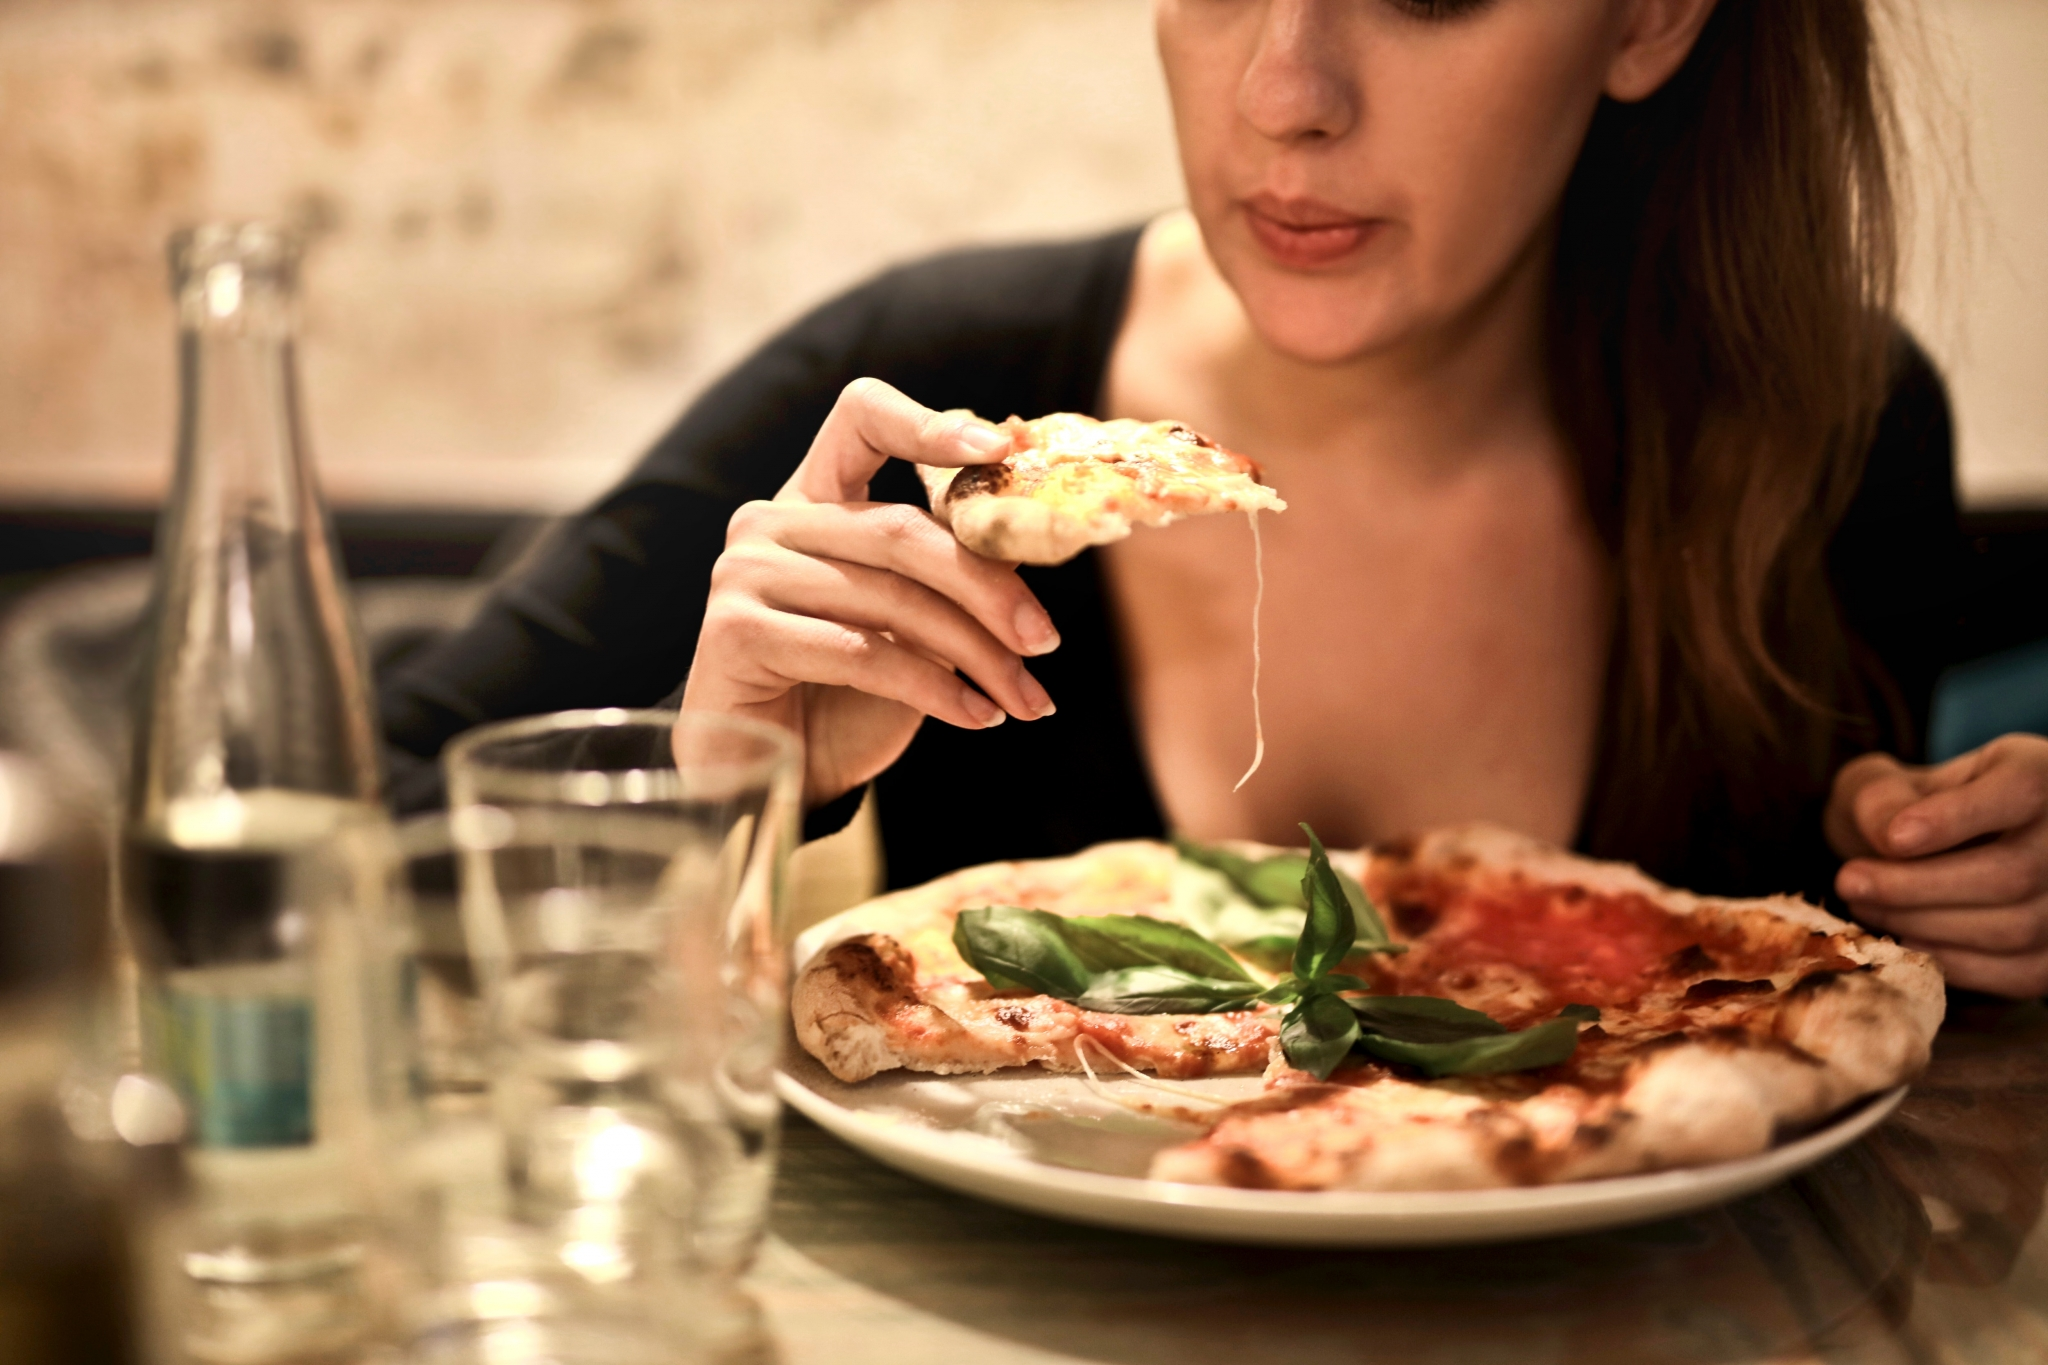 Woman eating thin crust pizza / Photo by bruce mars from Pexels